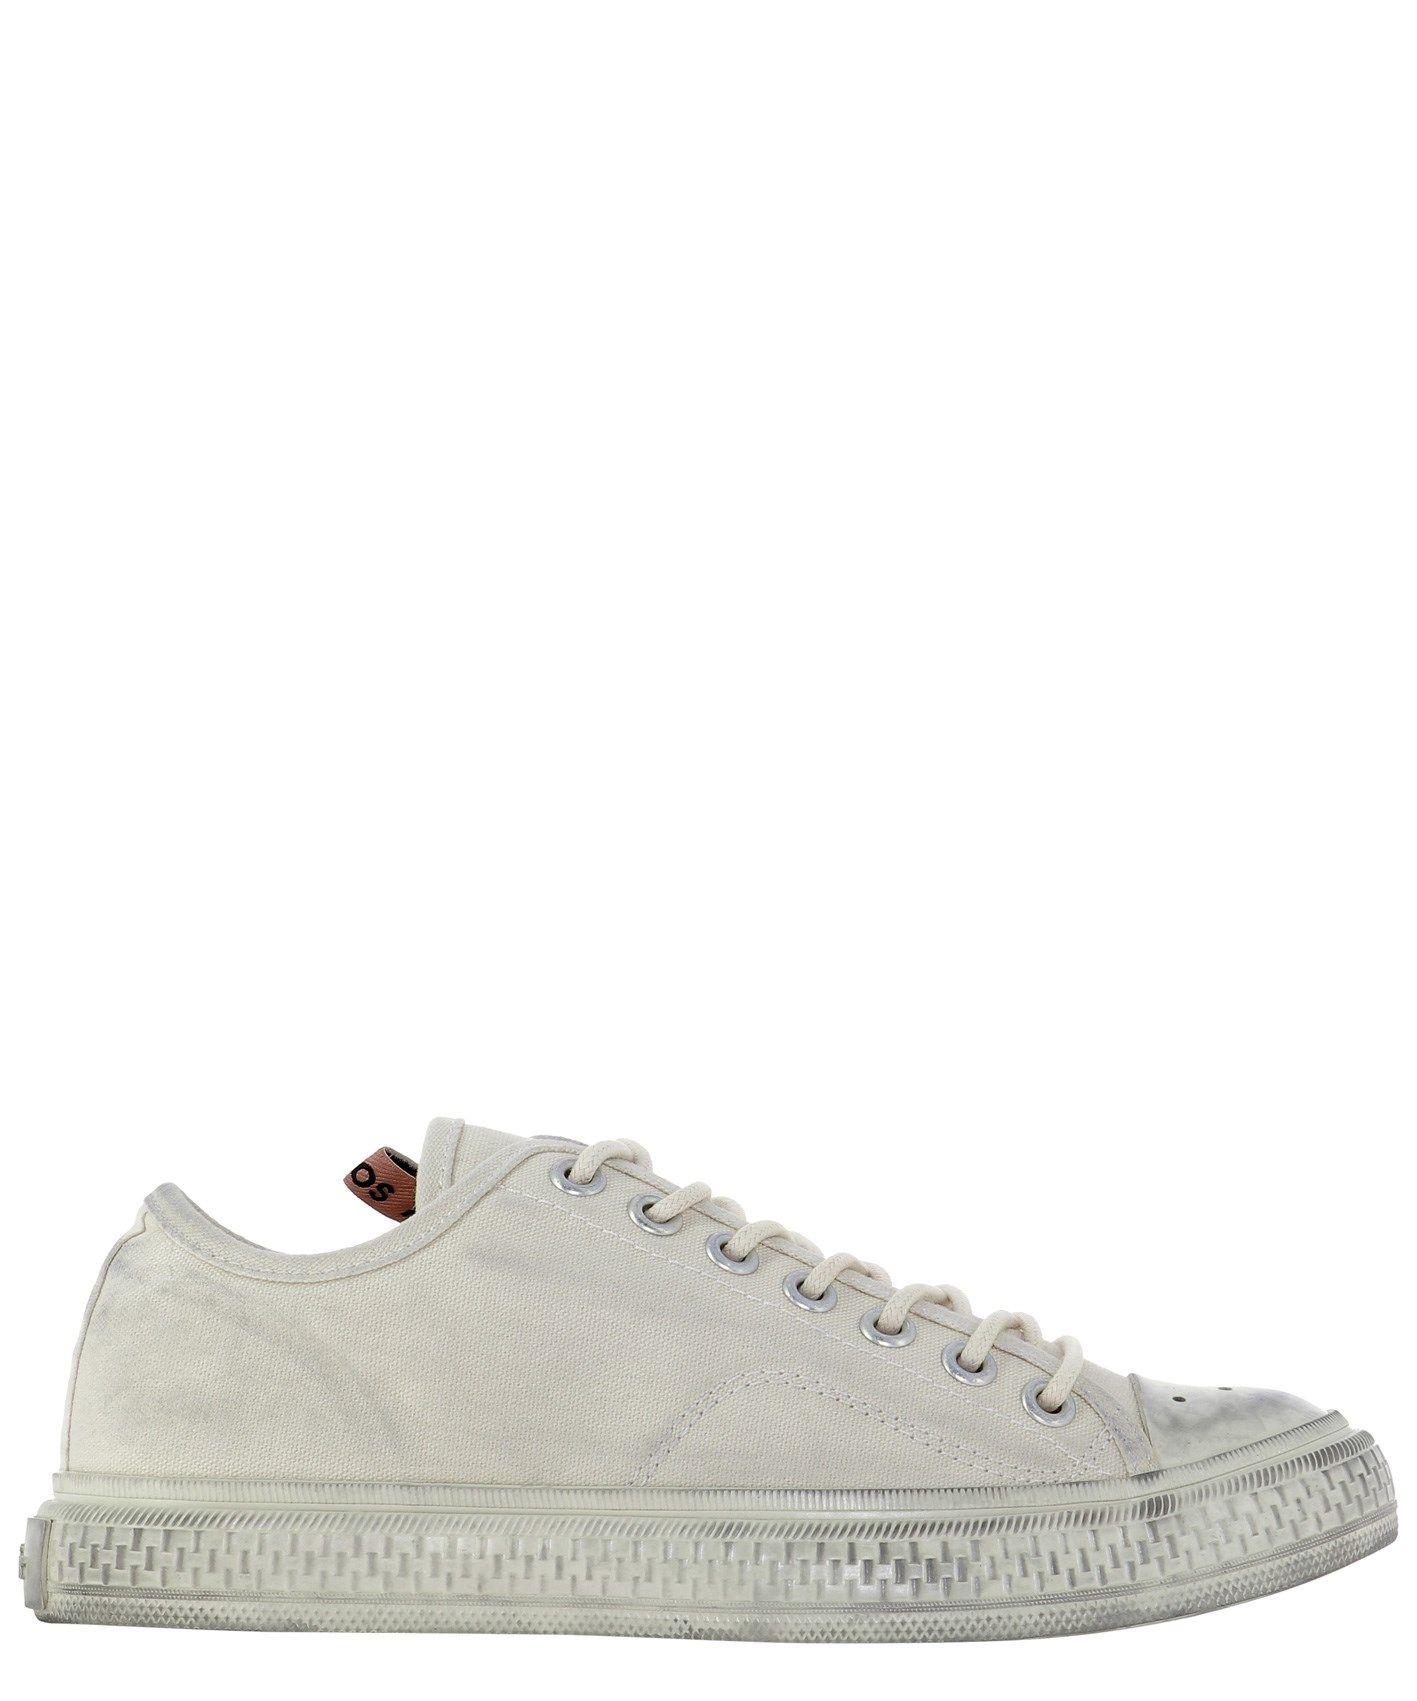 Acne Studios ACNE STUDIOS WOMEN'S WHITE OTHER MATERIALS SNEAKERS